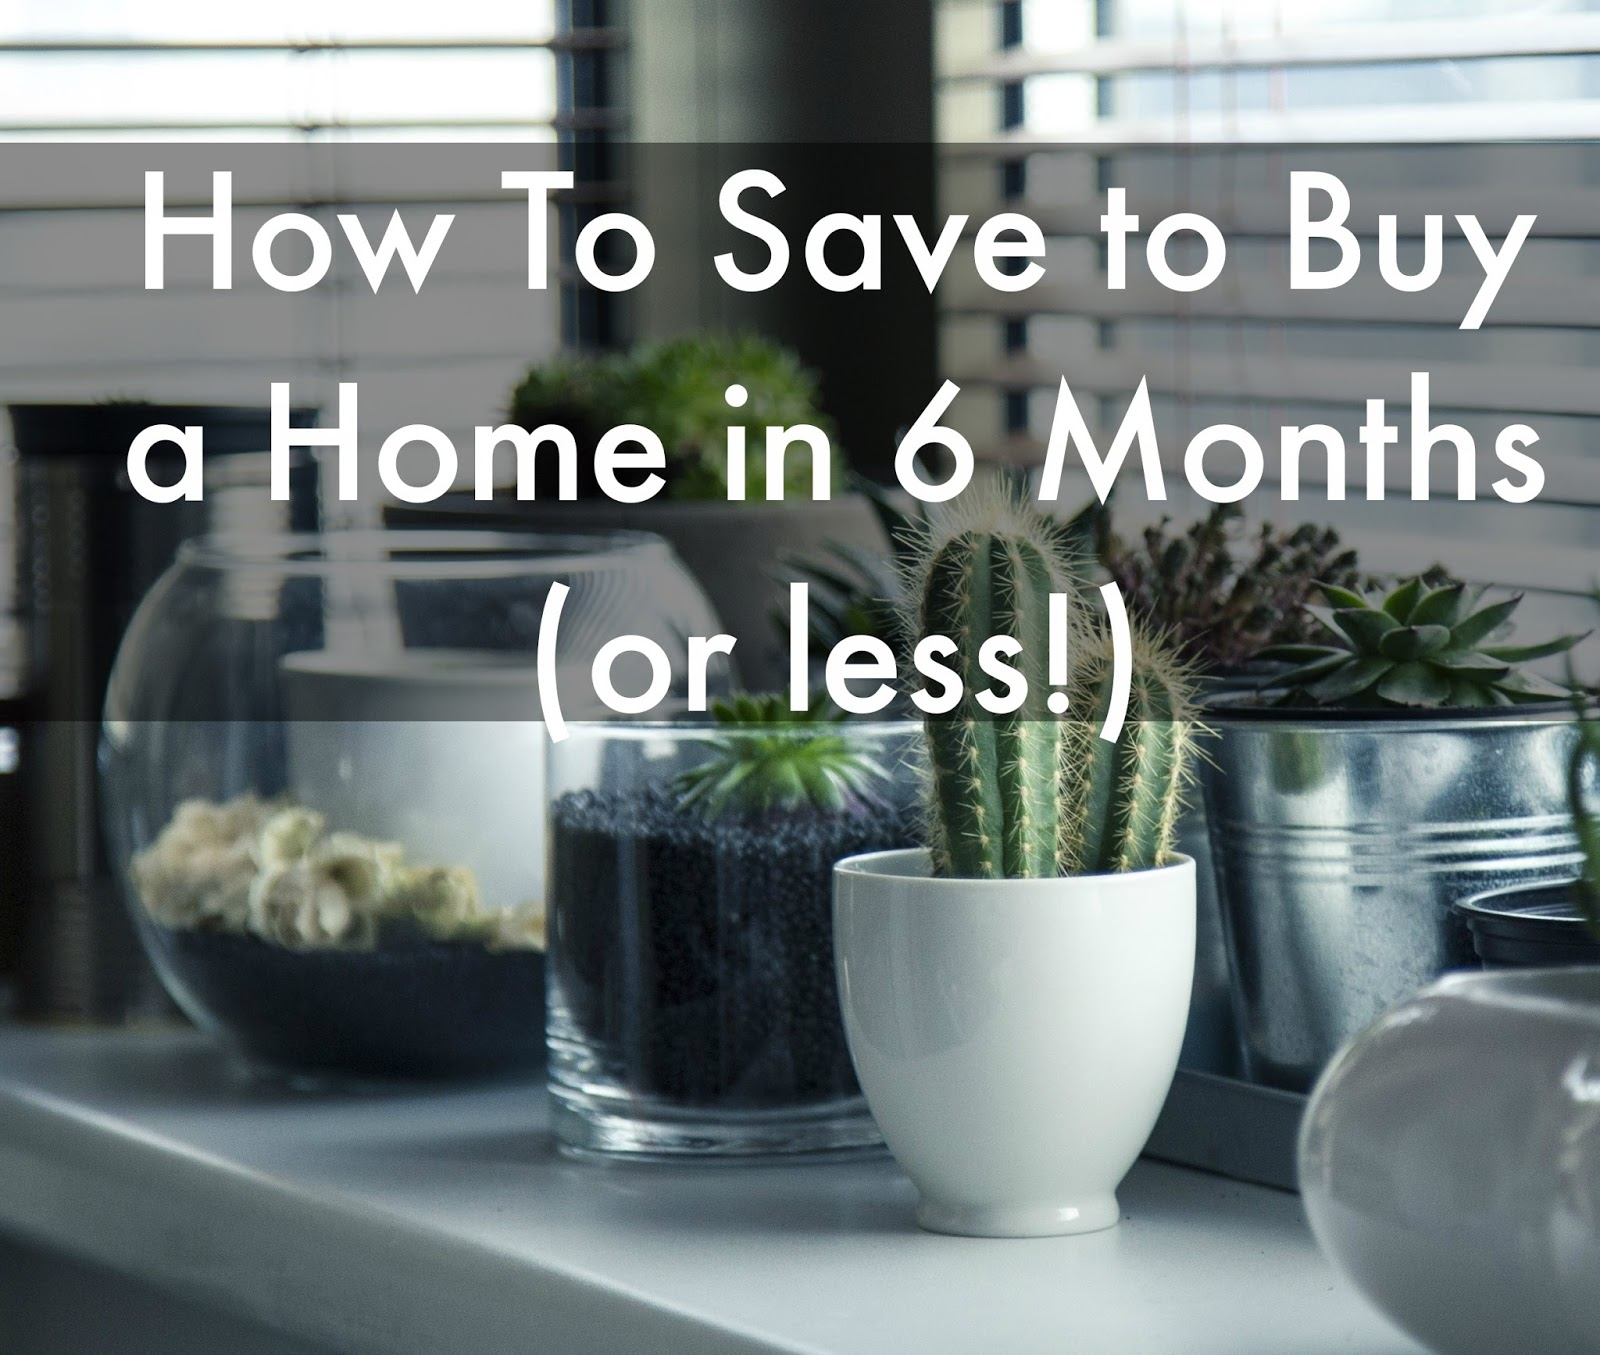 How To Save to Buy a Home in 6 Months